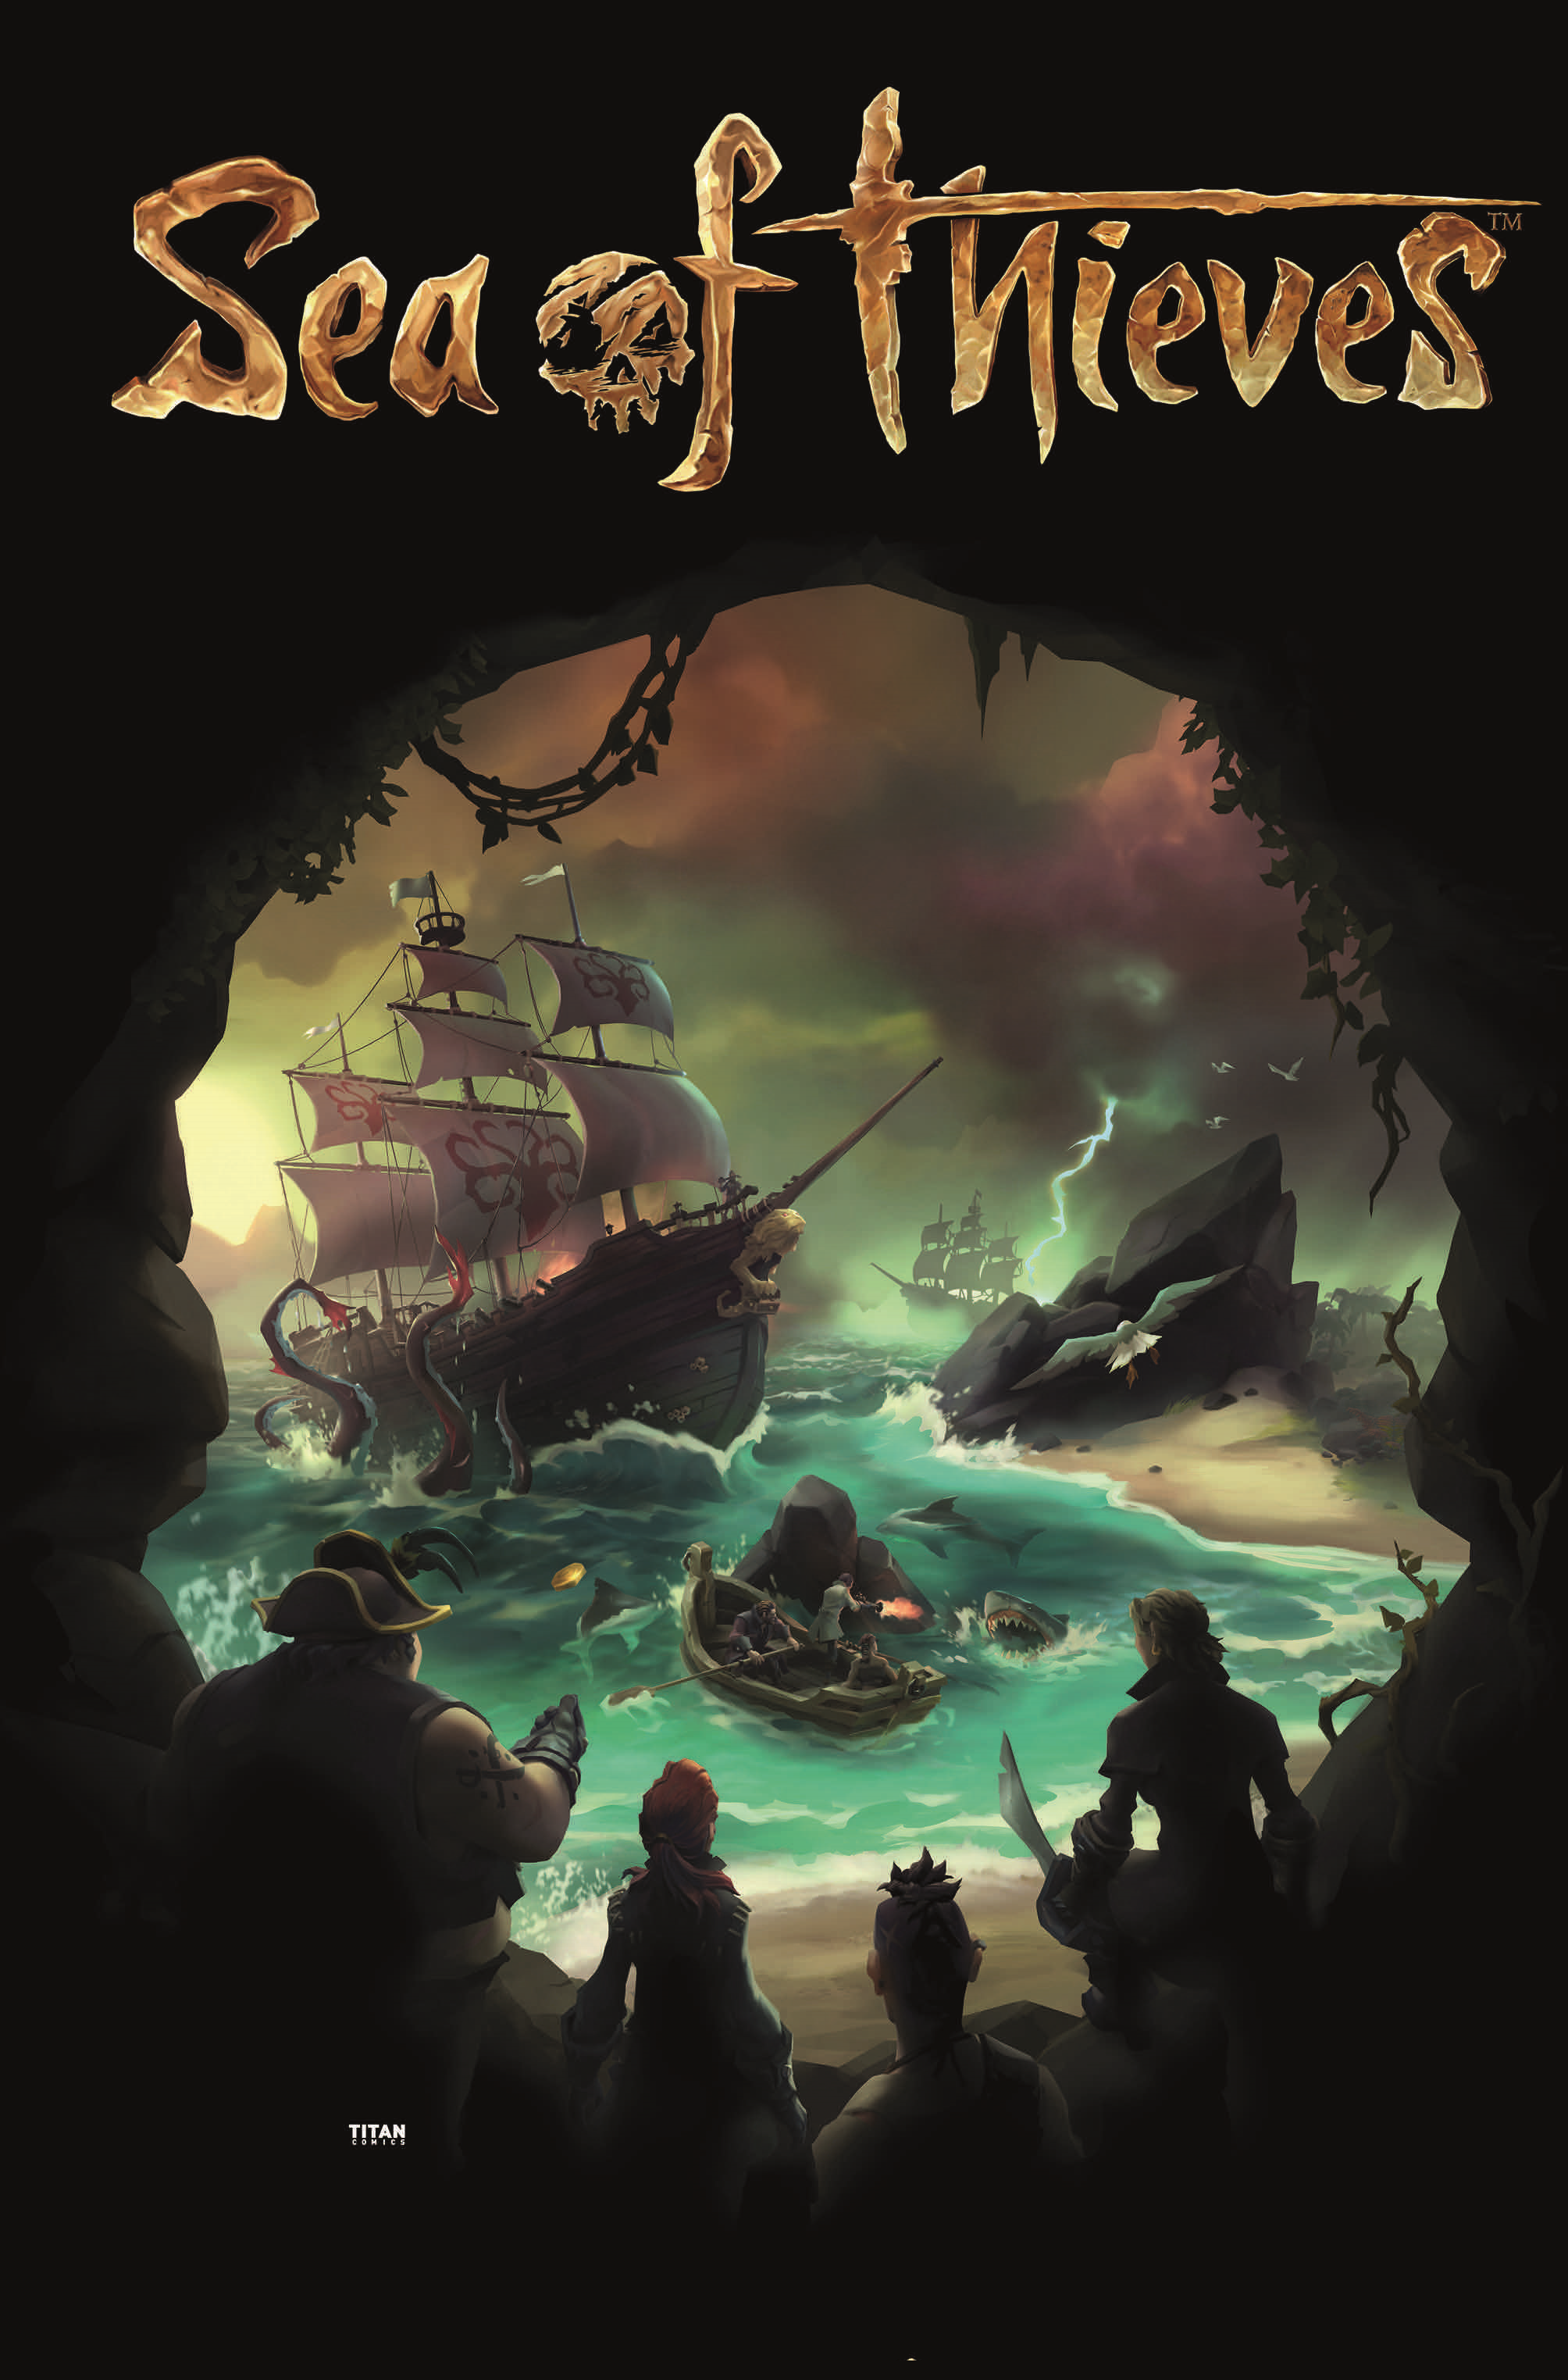 Sea-of-Thieves-Keygen-Crack